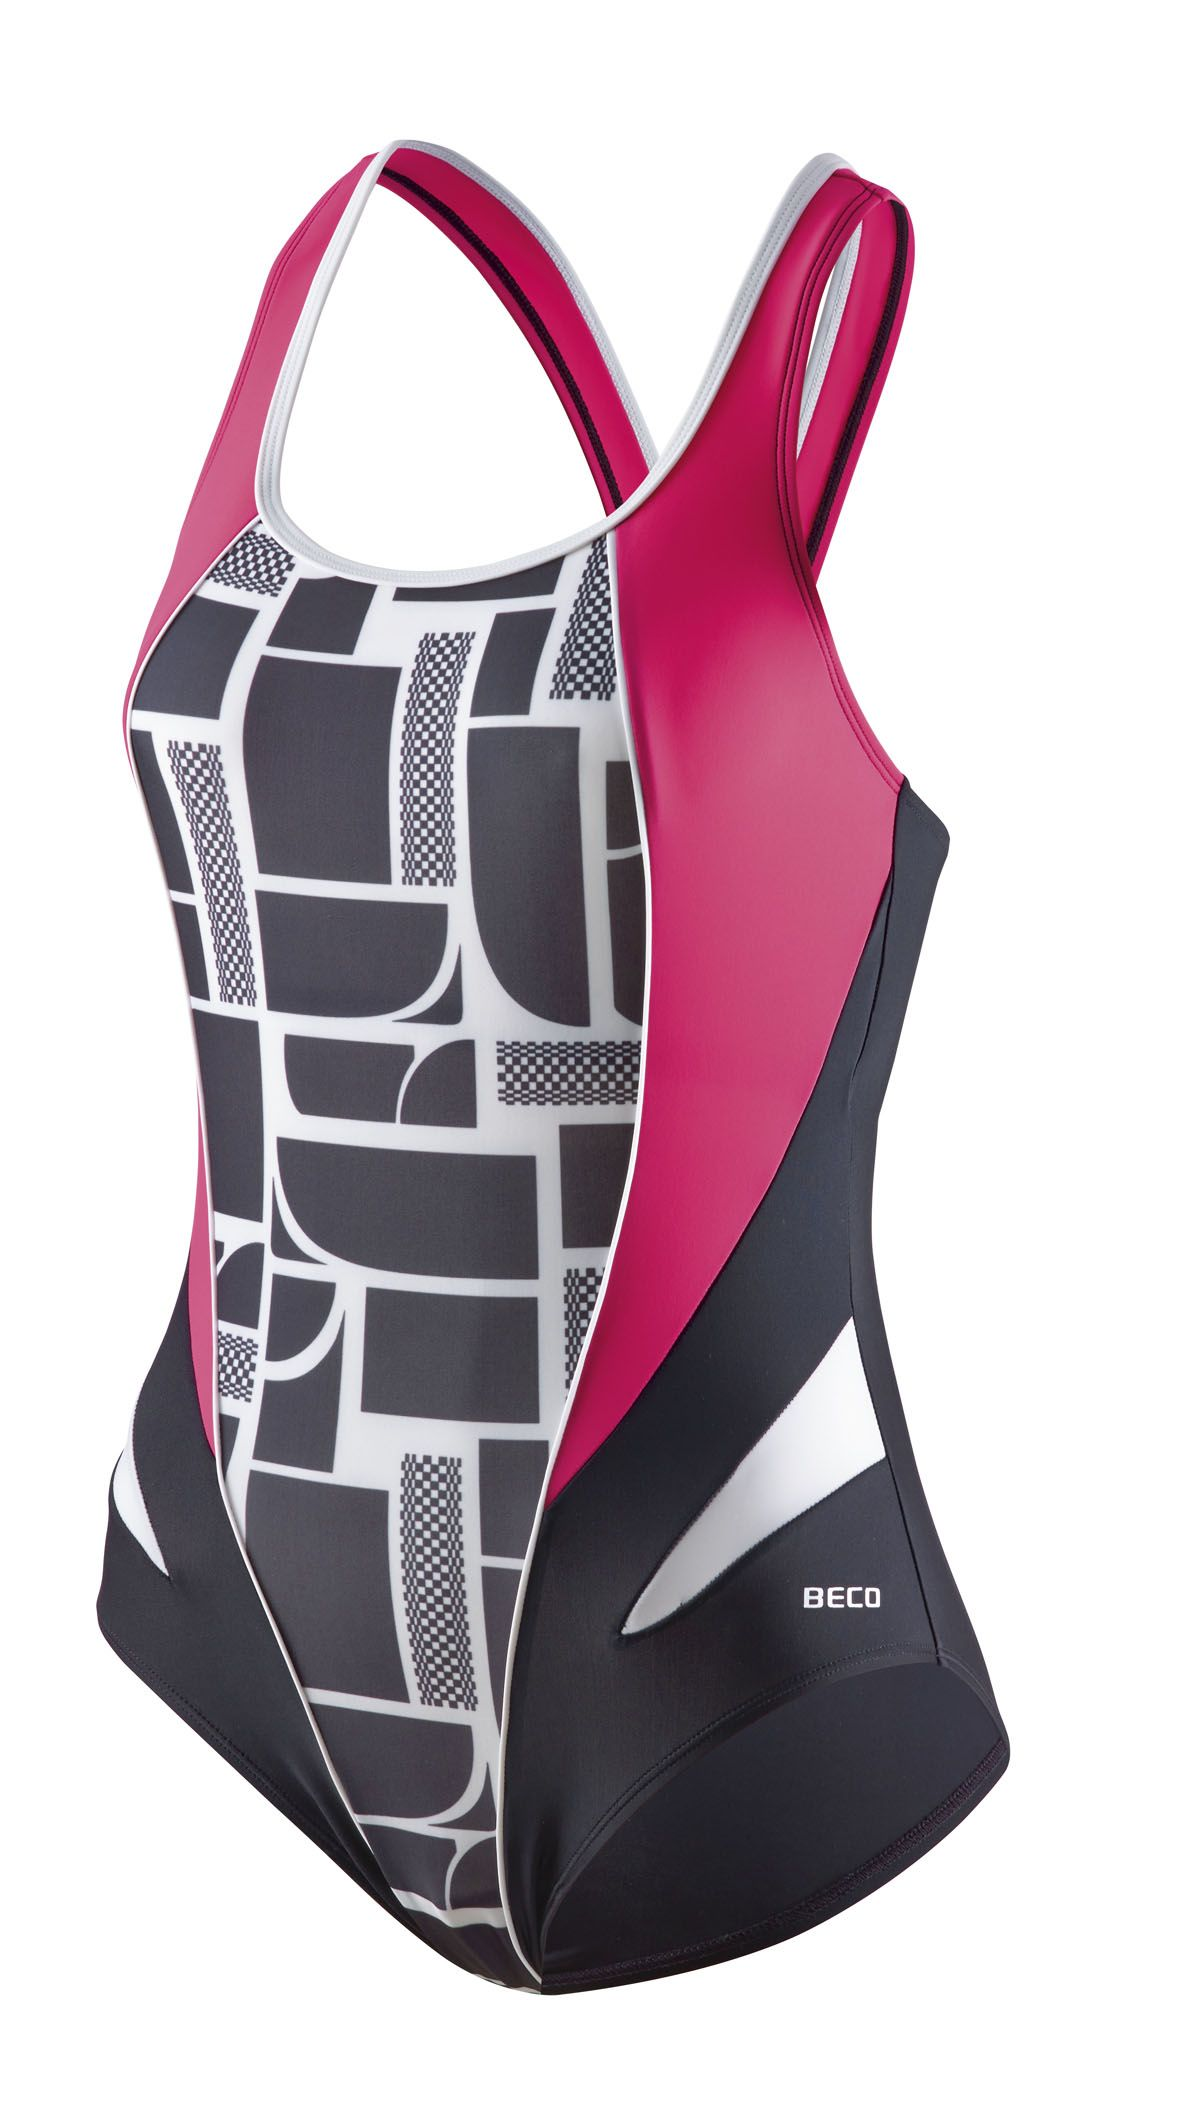 b745bb83b50b7 BECO competition swimsuit; Work Out; 100% PES   BECO Swimwear ...